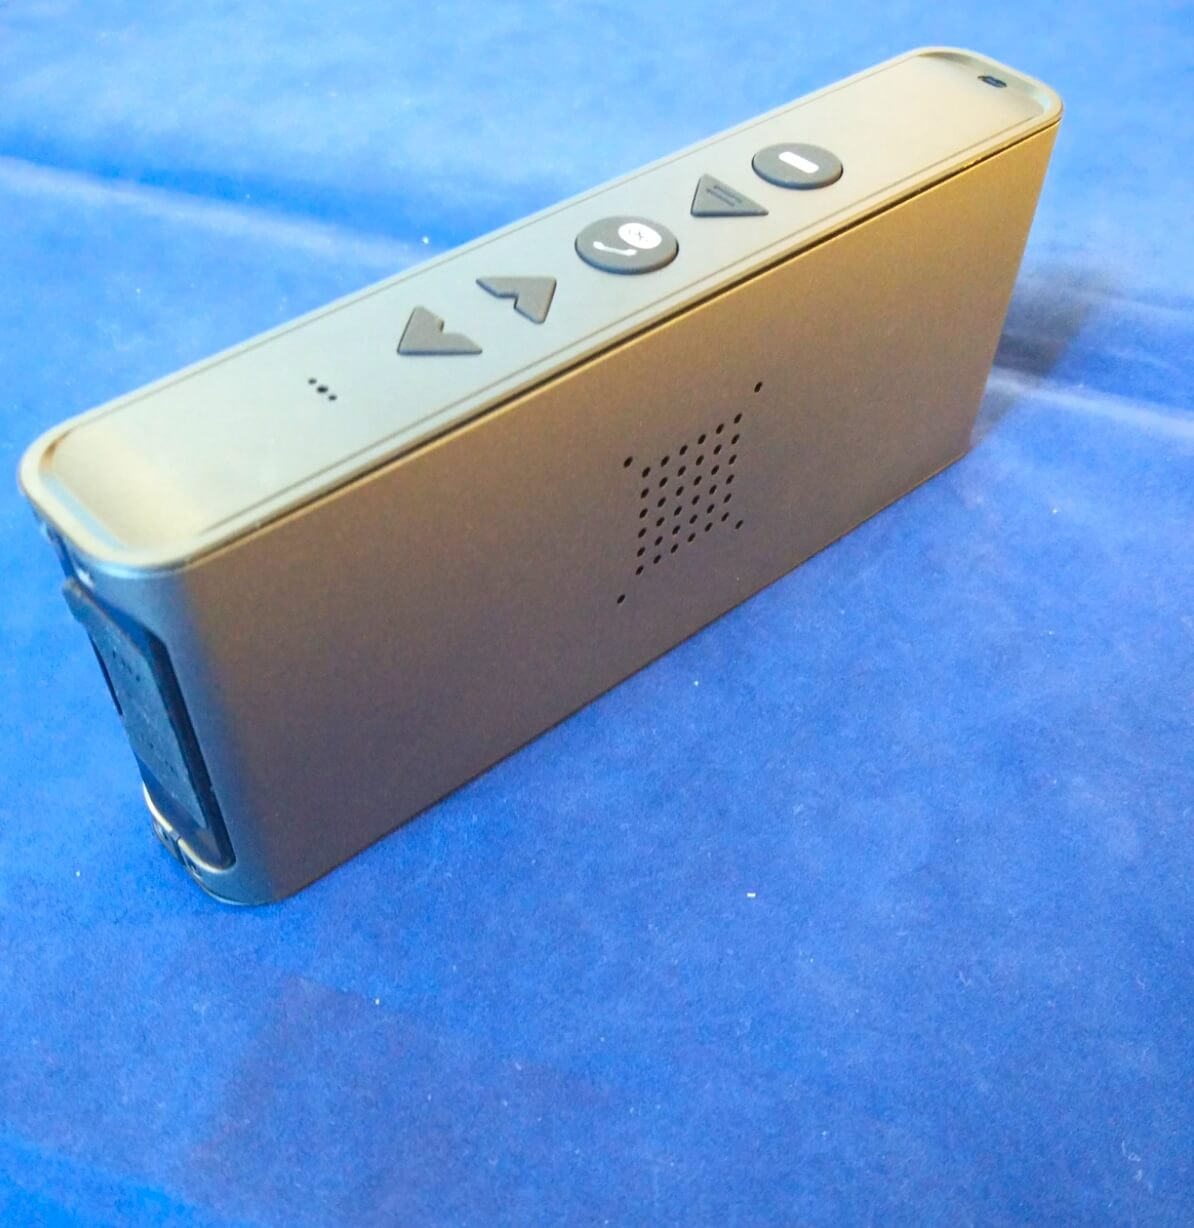 iClever Wireless Speaker